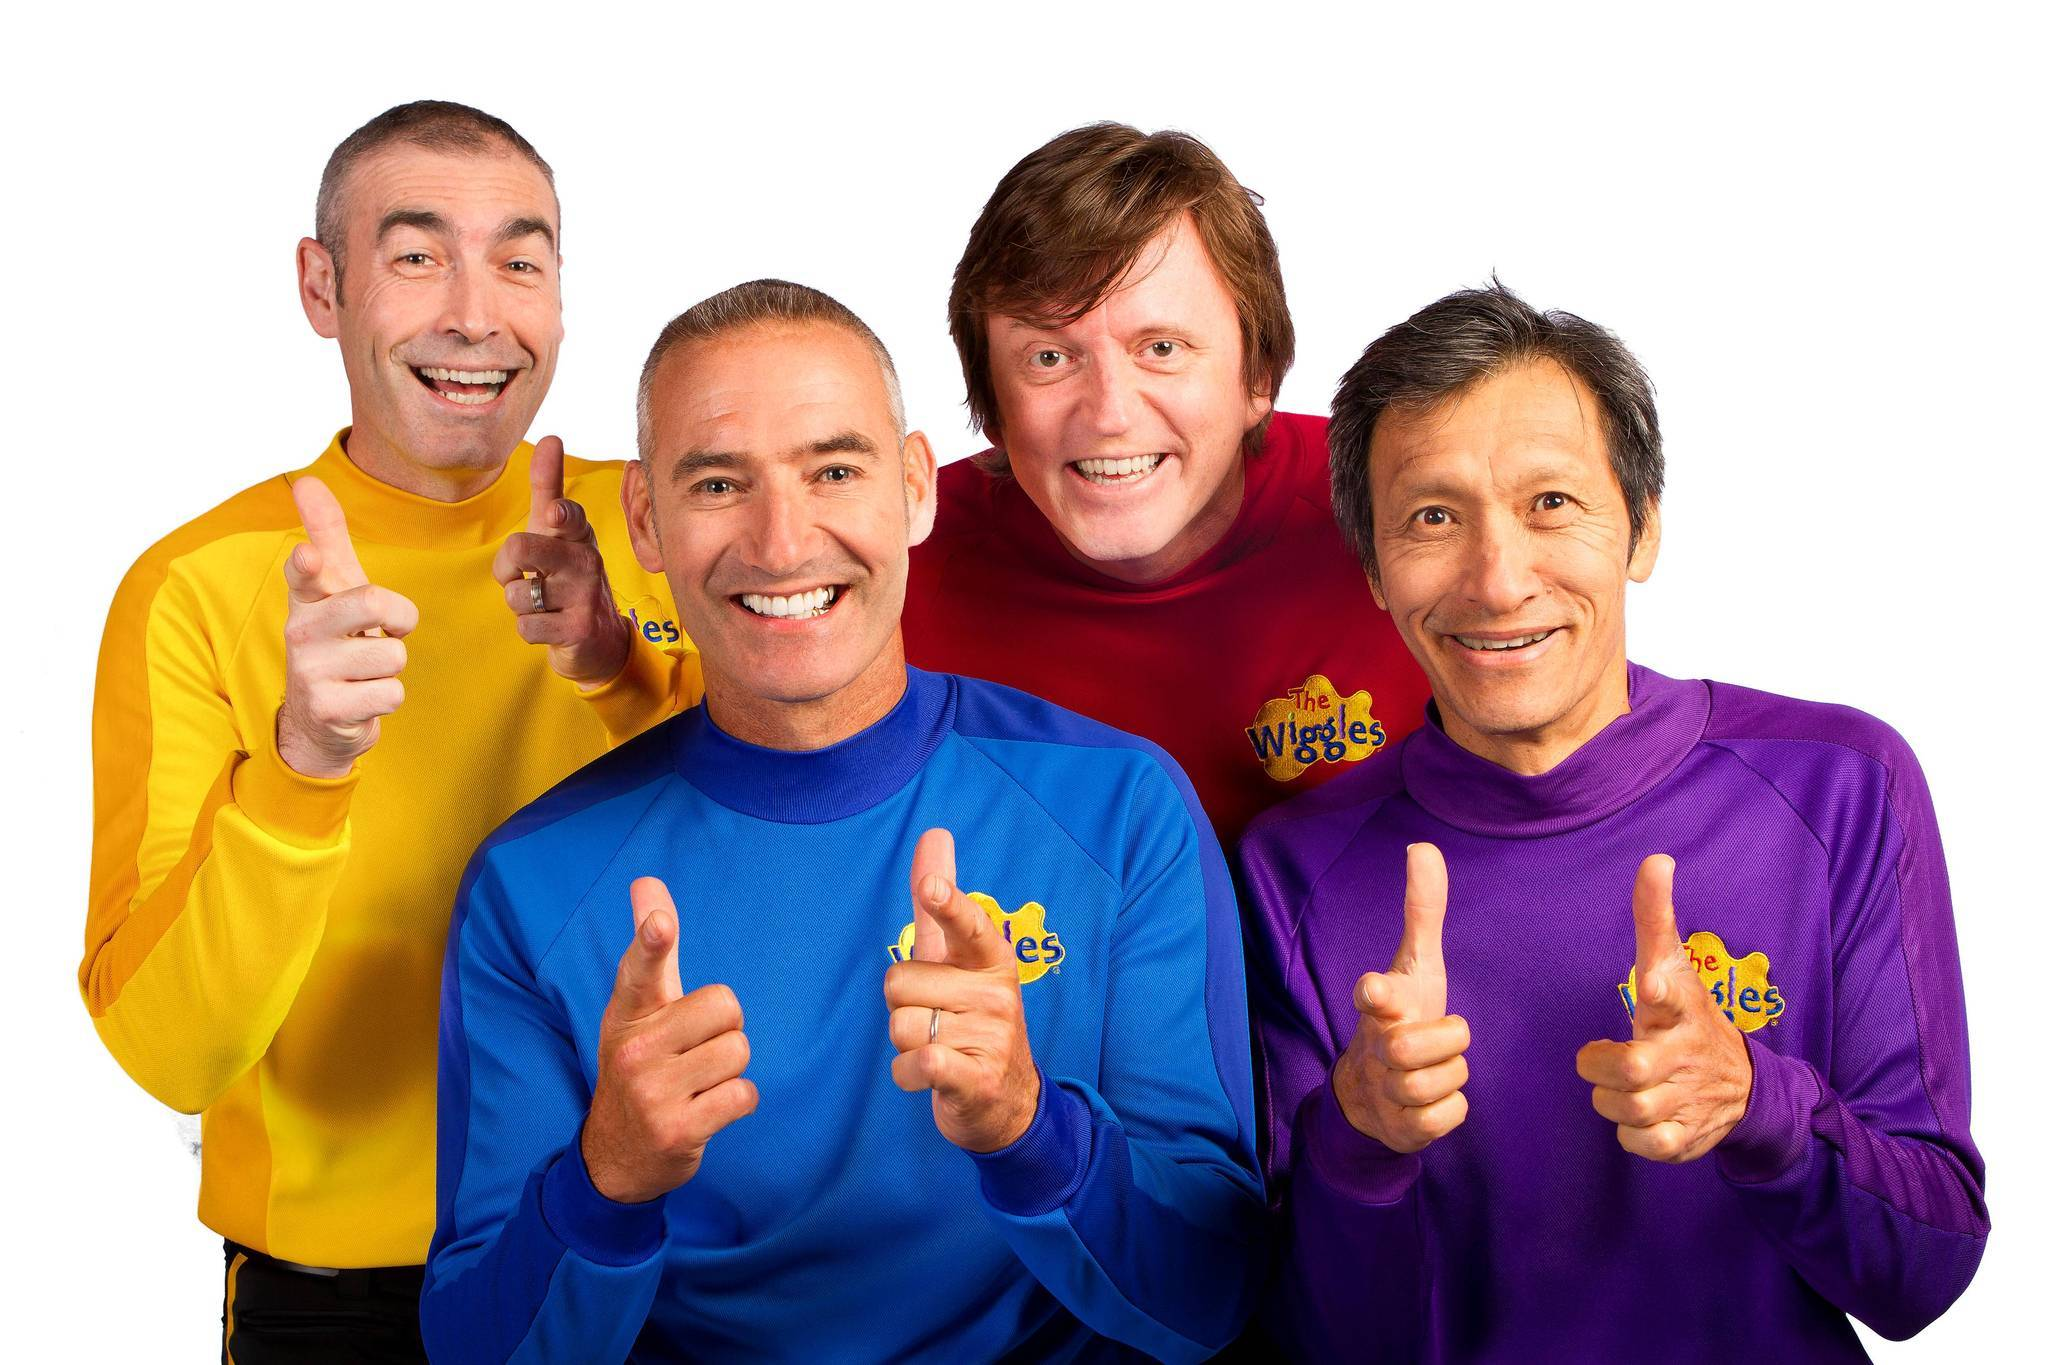 The Wiggles will perform Aug. 4 at Hard Rock Live in Orlando. (L-R: Greg Page, Anthony Field, Murray Cook and Jeff Fatt.)